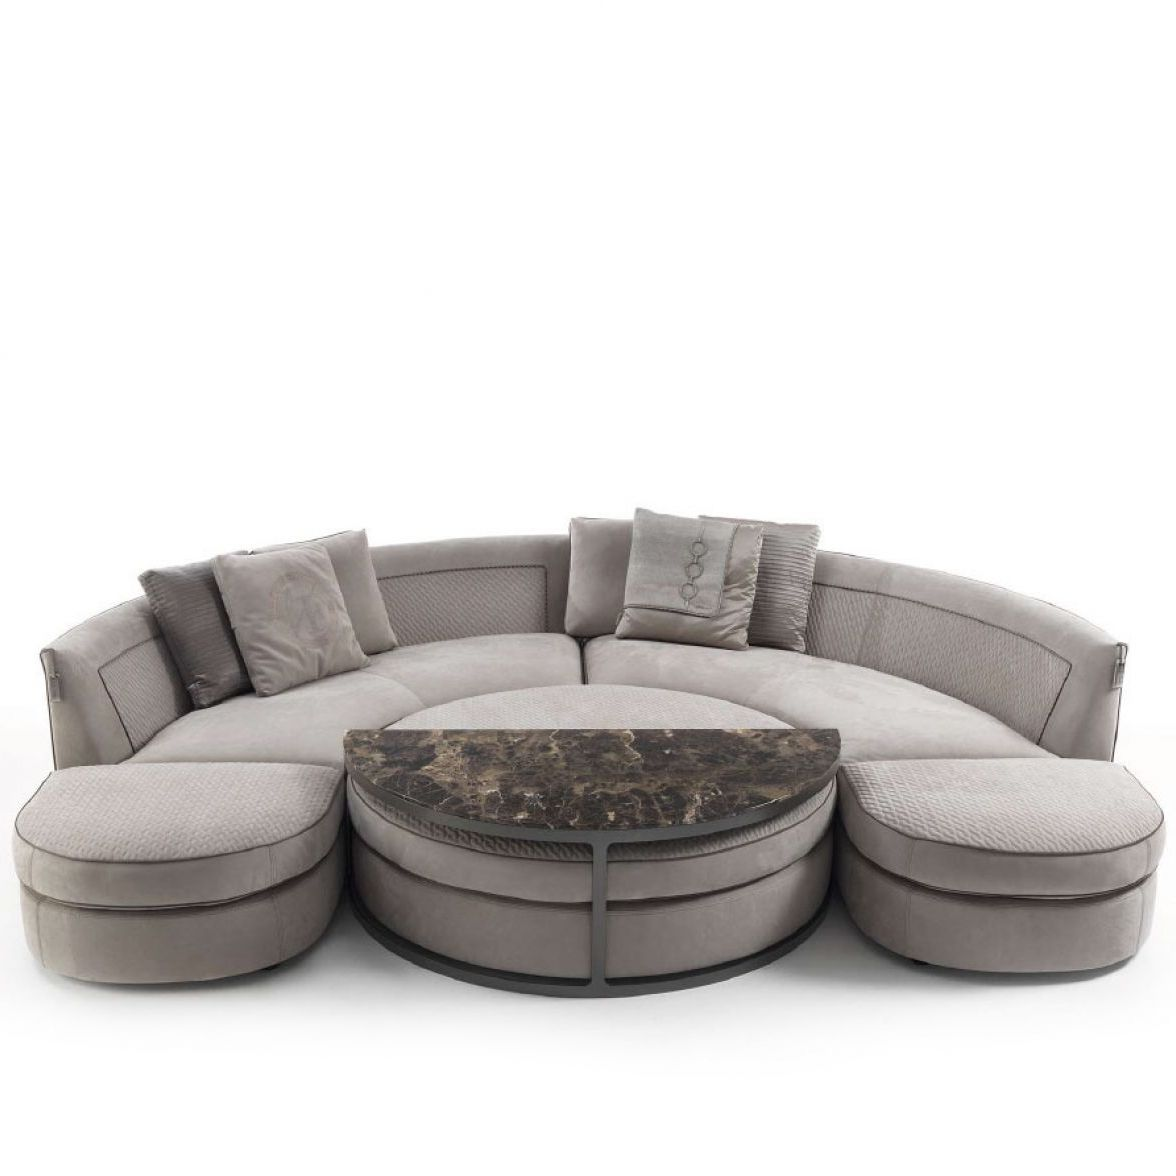 Borromeo sofa фото цена